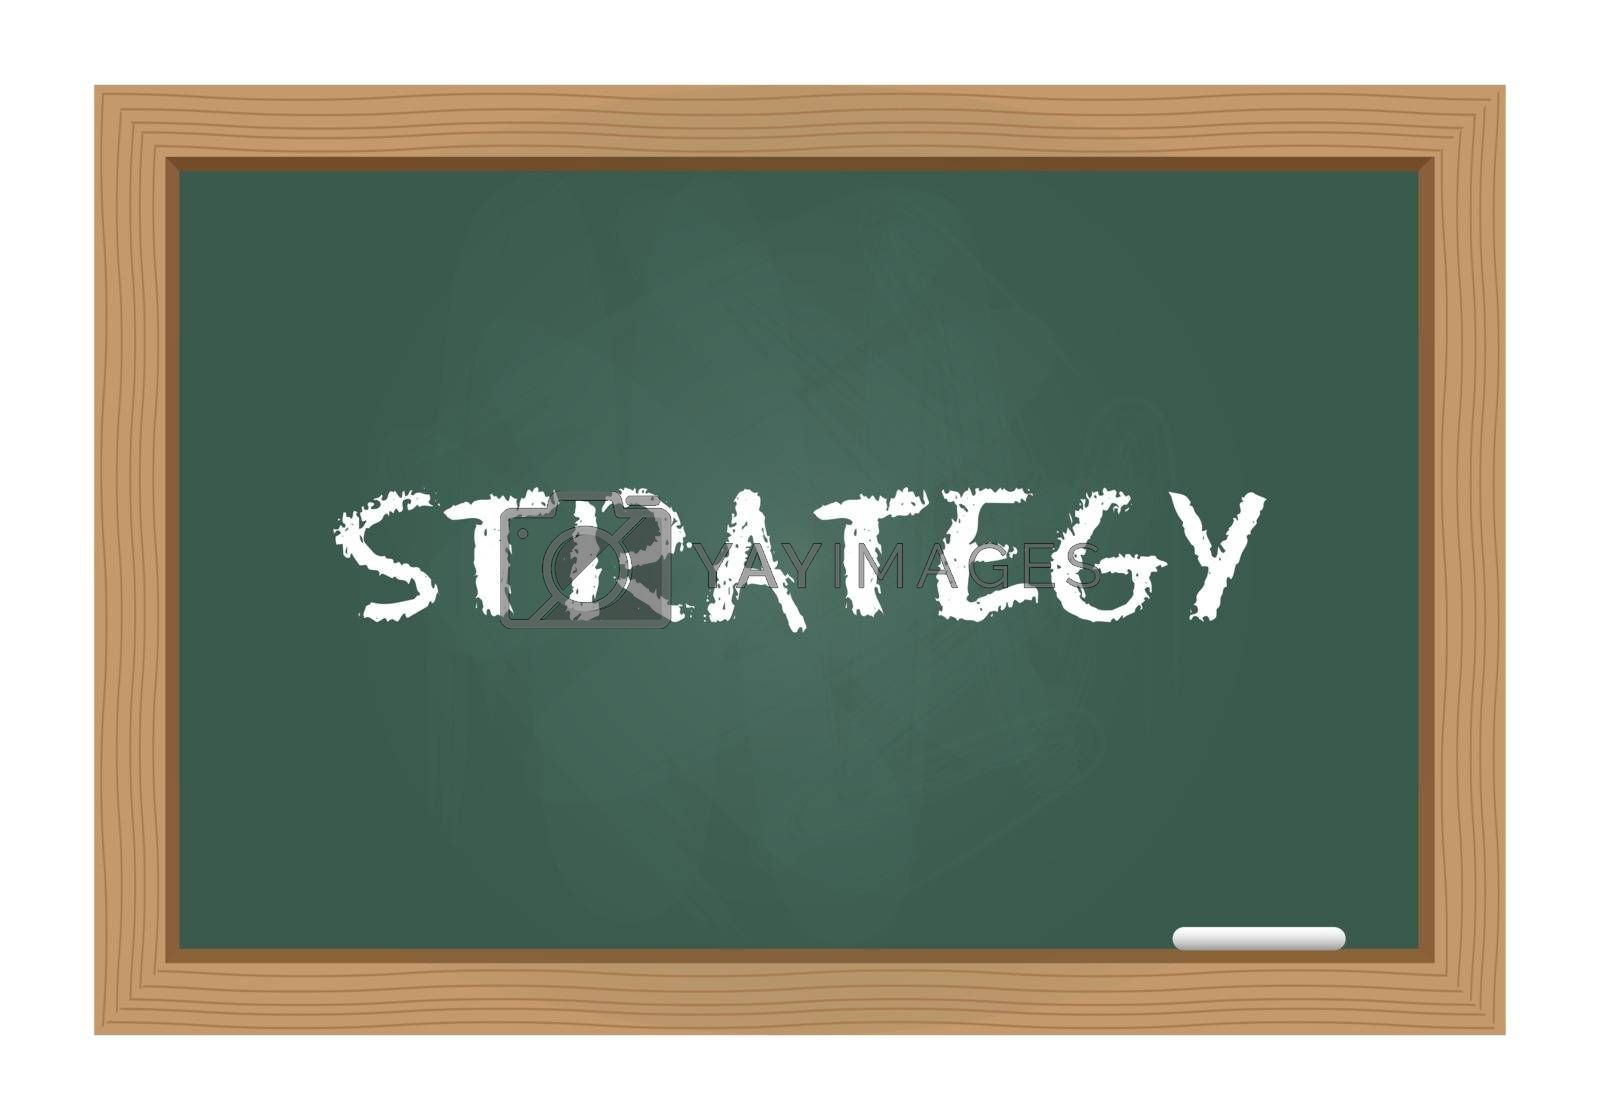 Royalty free image of Strategy text on chalkboard by simo988